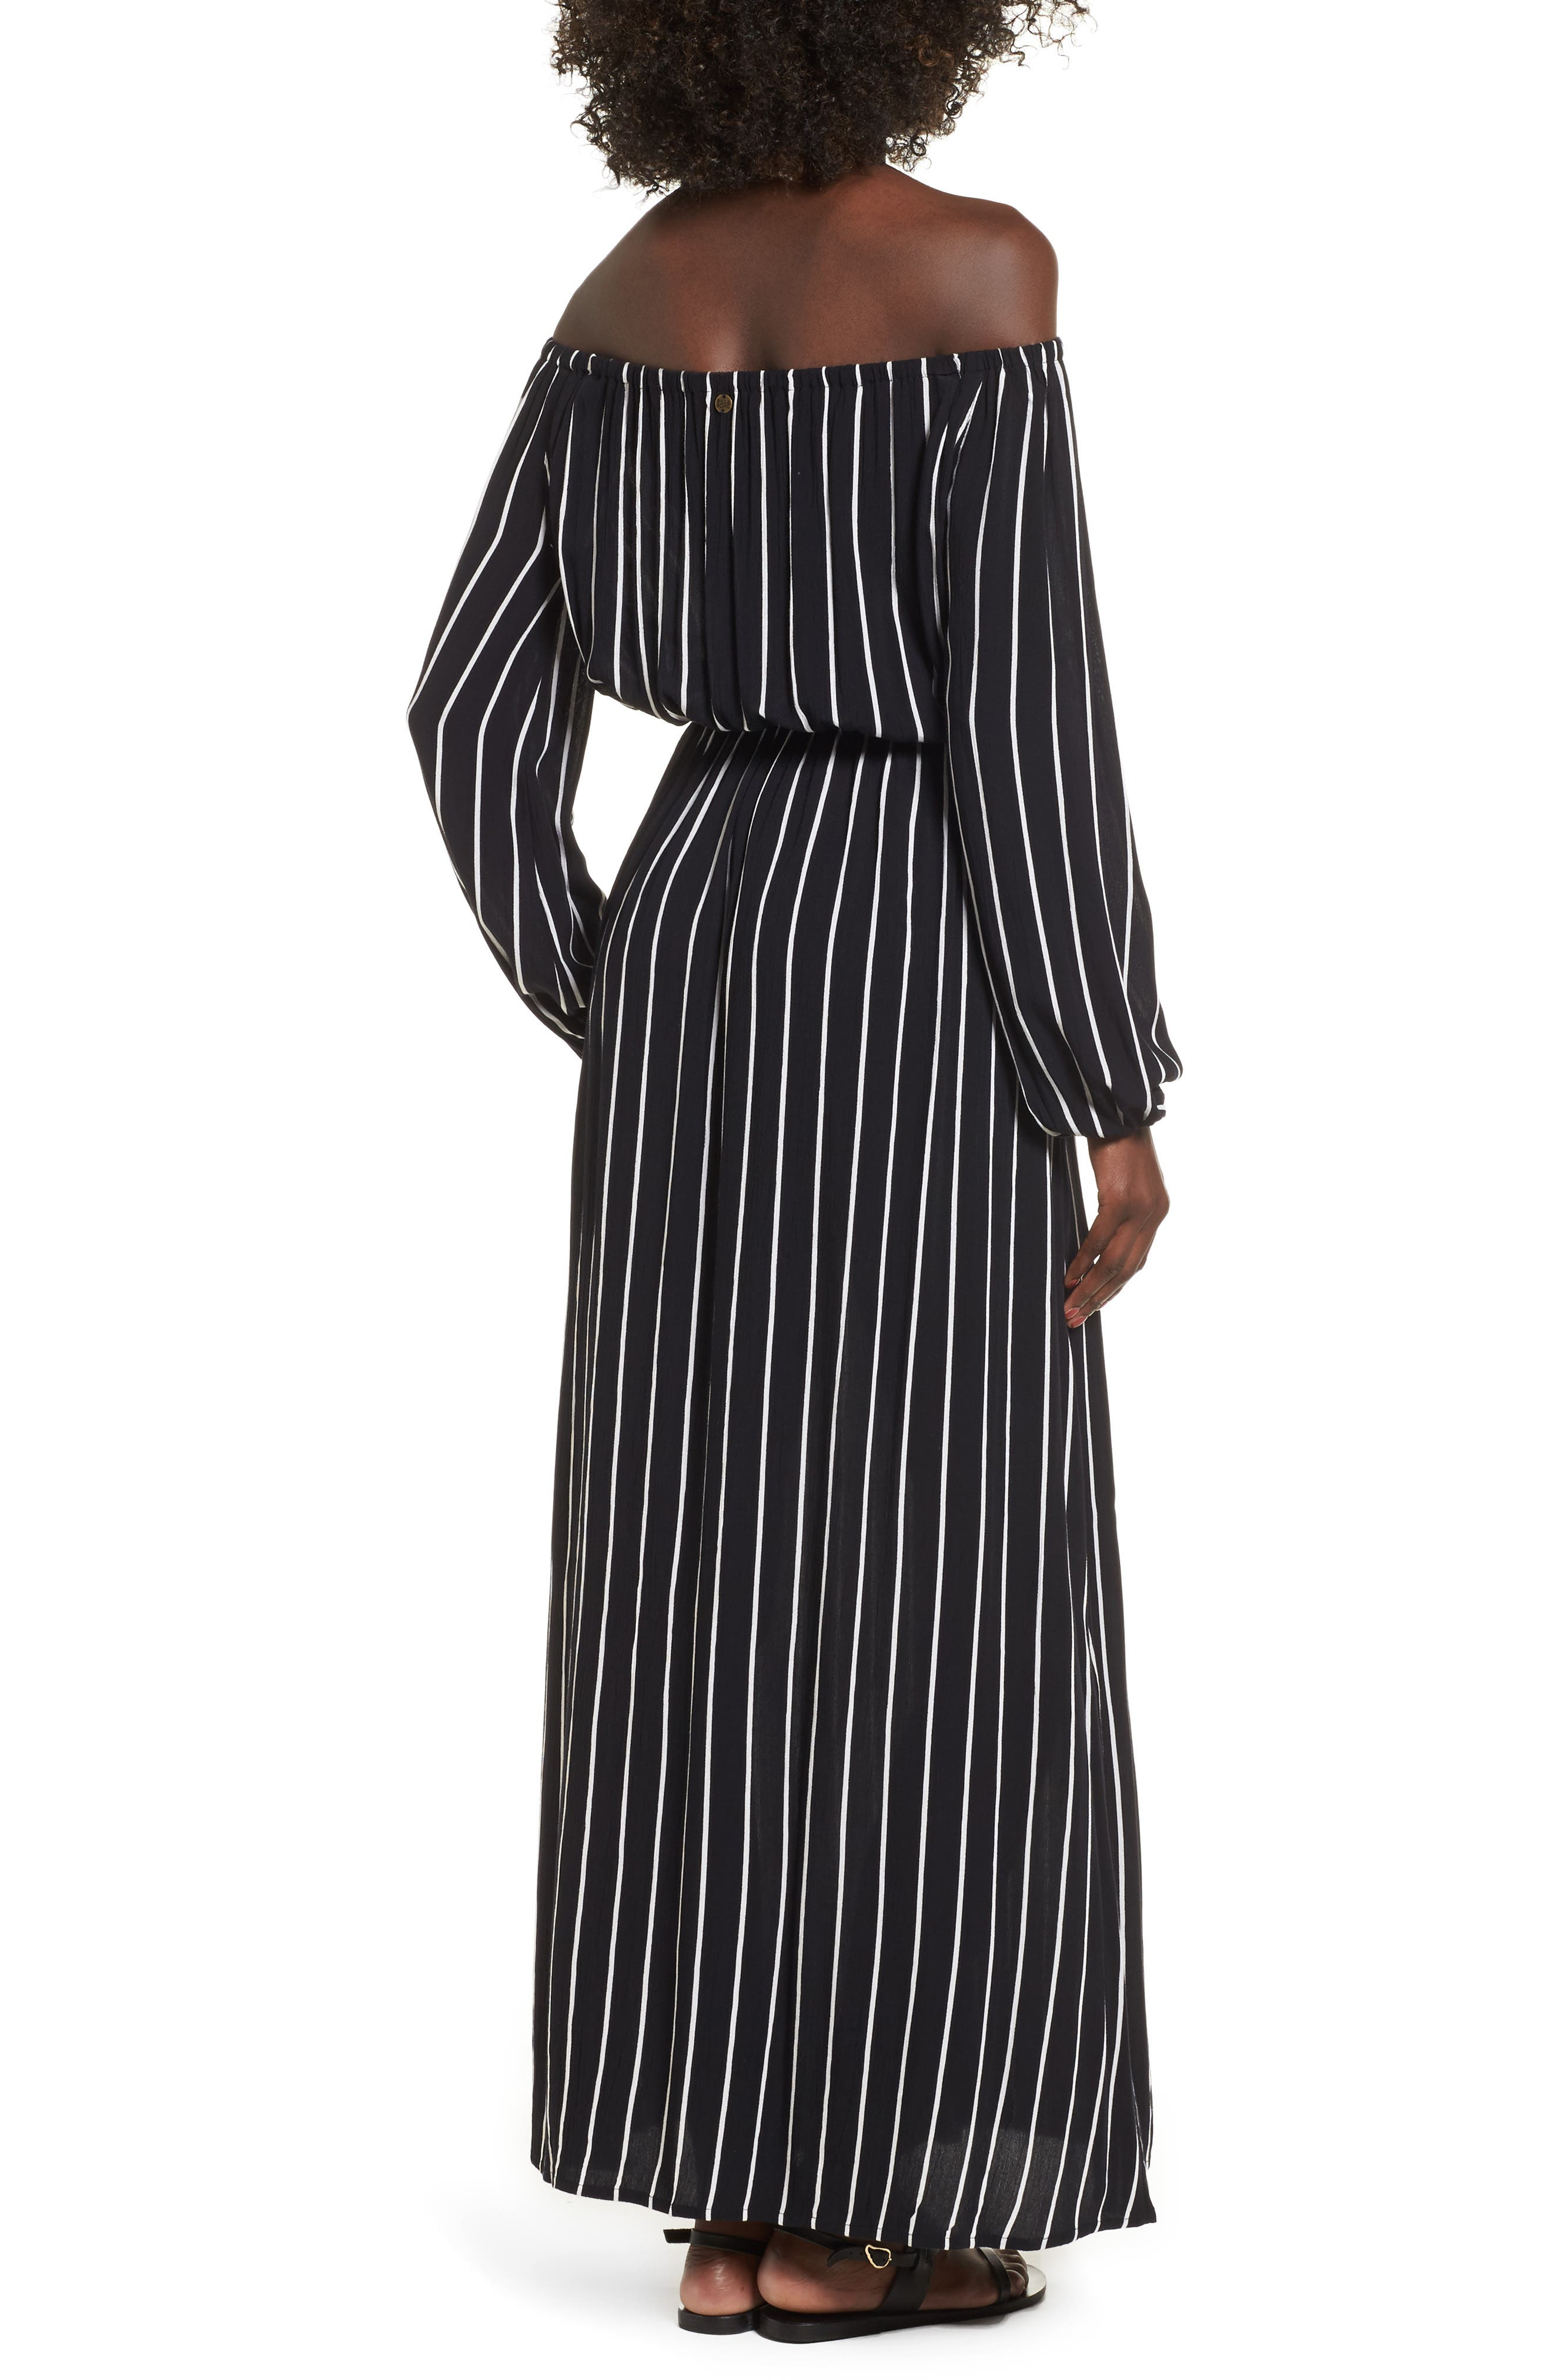 Crystal Ball Off the Shoulder Maxi Dress,                             Alternate thumbnail 2, color,                             001